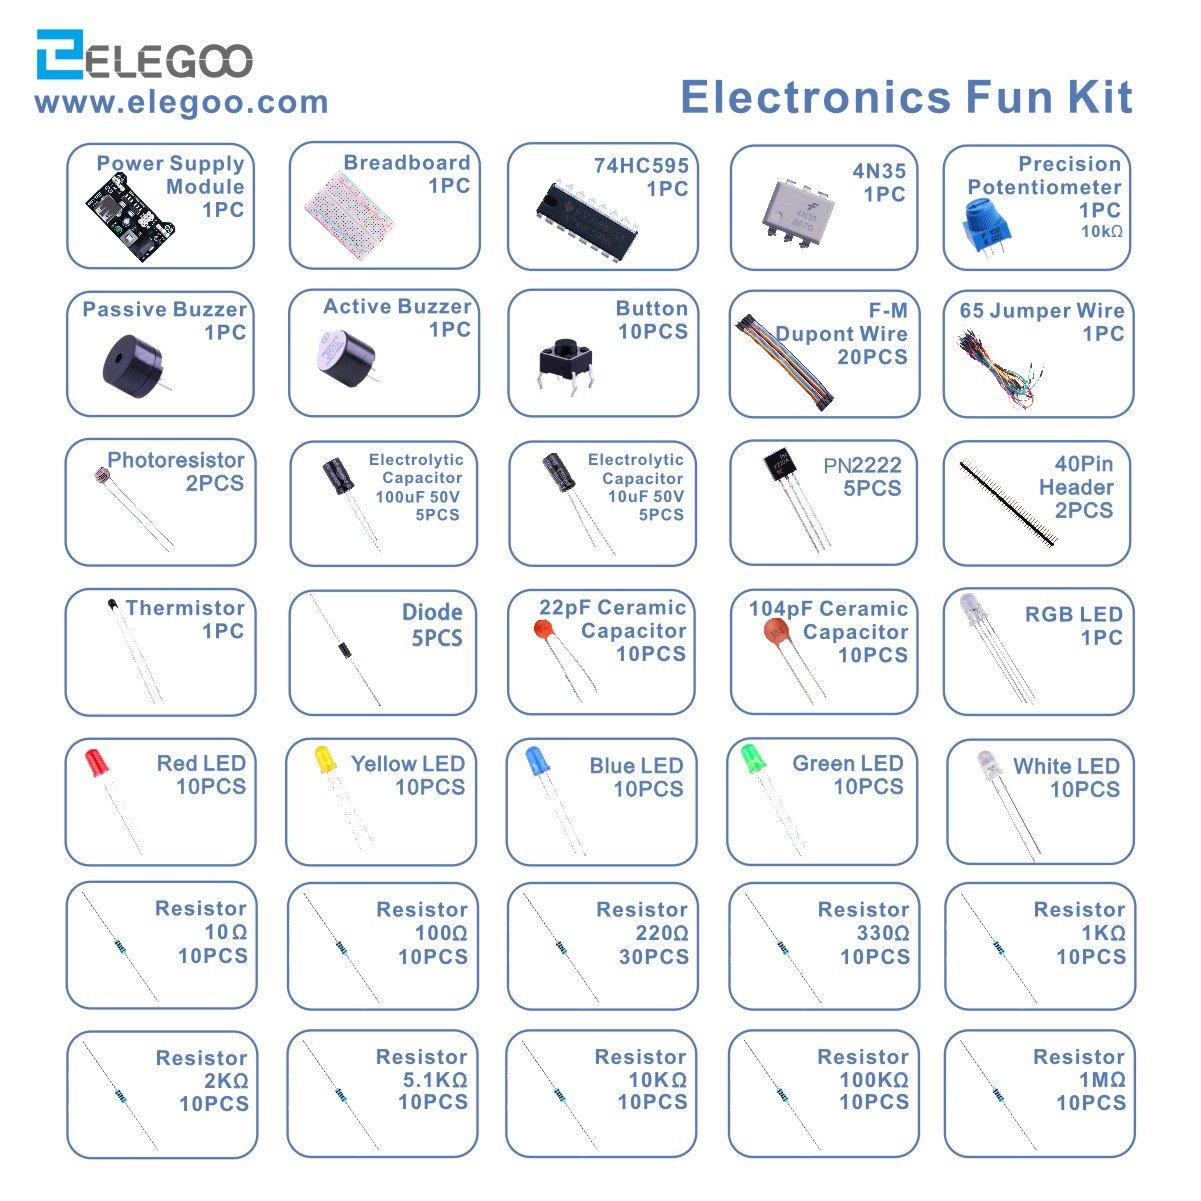 Elegoo Electronic Fun Kit Breadboard Cable Resistor Capacitor Led Topic Rgb Driver Circuit Works But Gets Hot Read 1 Potentiometer For Arduino Learning Uno R3 Mega2560 Raspberry Pi